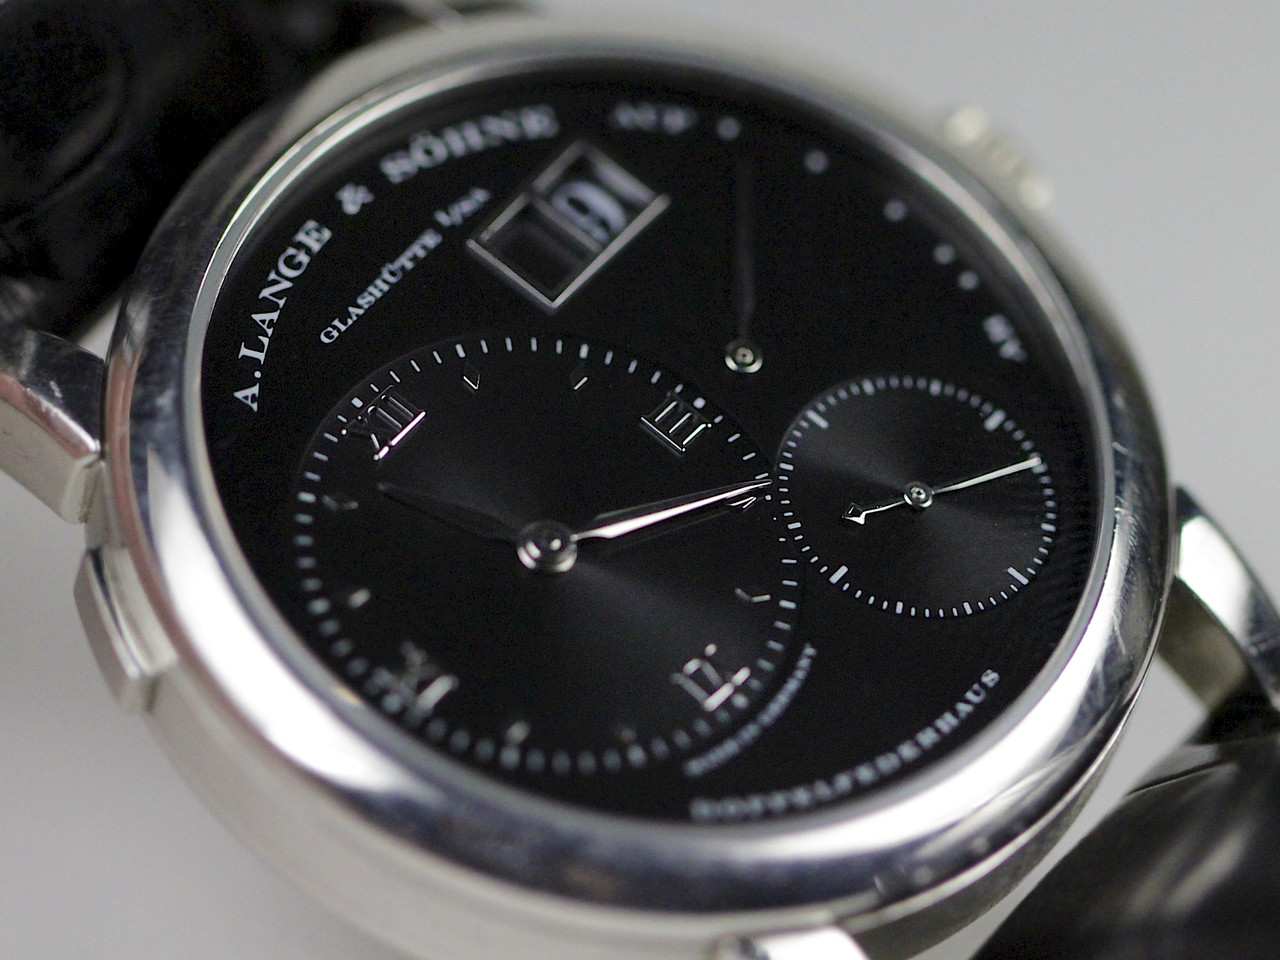 """Black Rhodium Dial """"Darth"""" close -up detail - A Lange & Sohne Watch - Lange 1 Black Darth Dial 101.035 pre-owned for sale Legend of Time - Chicago Watch Center"""